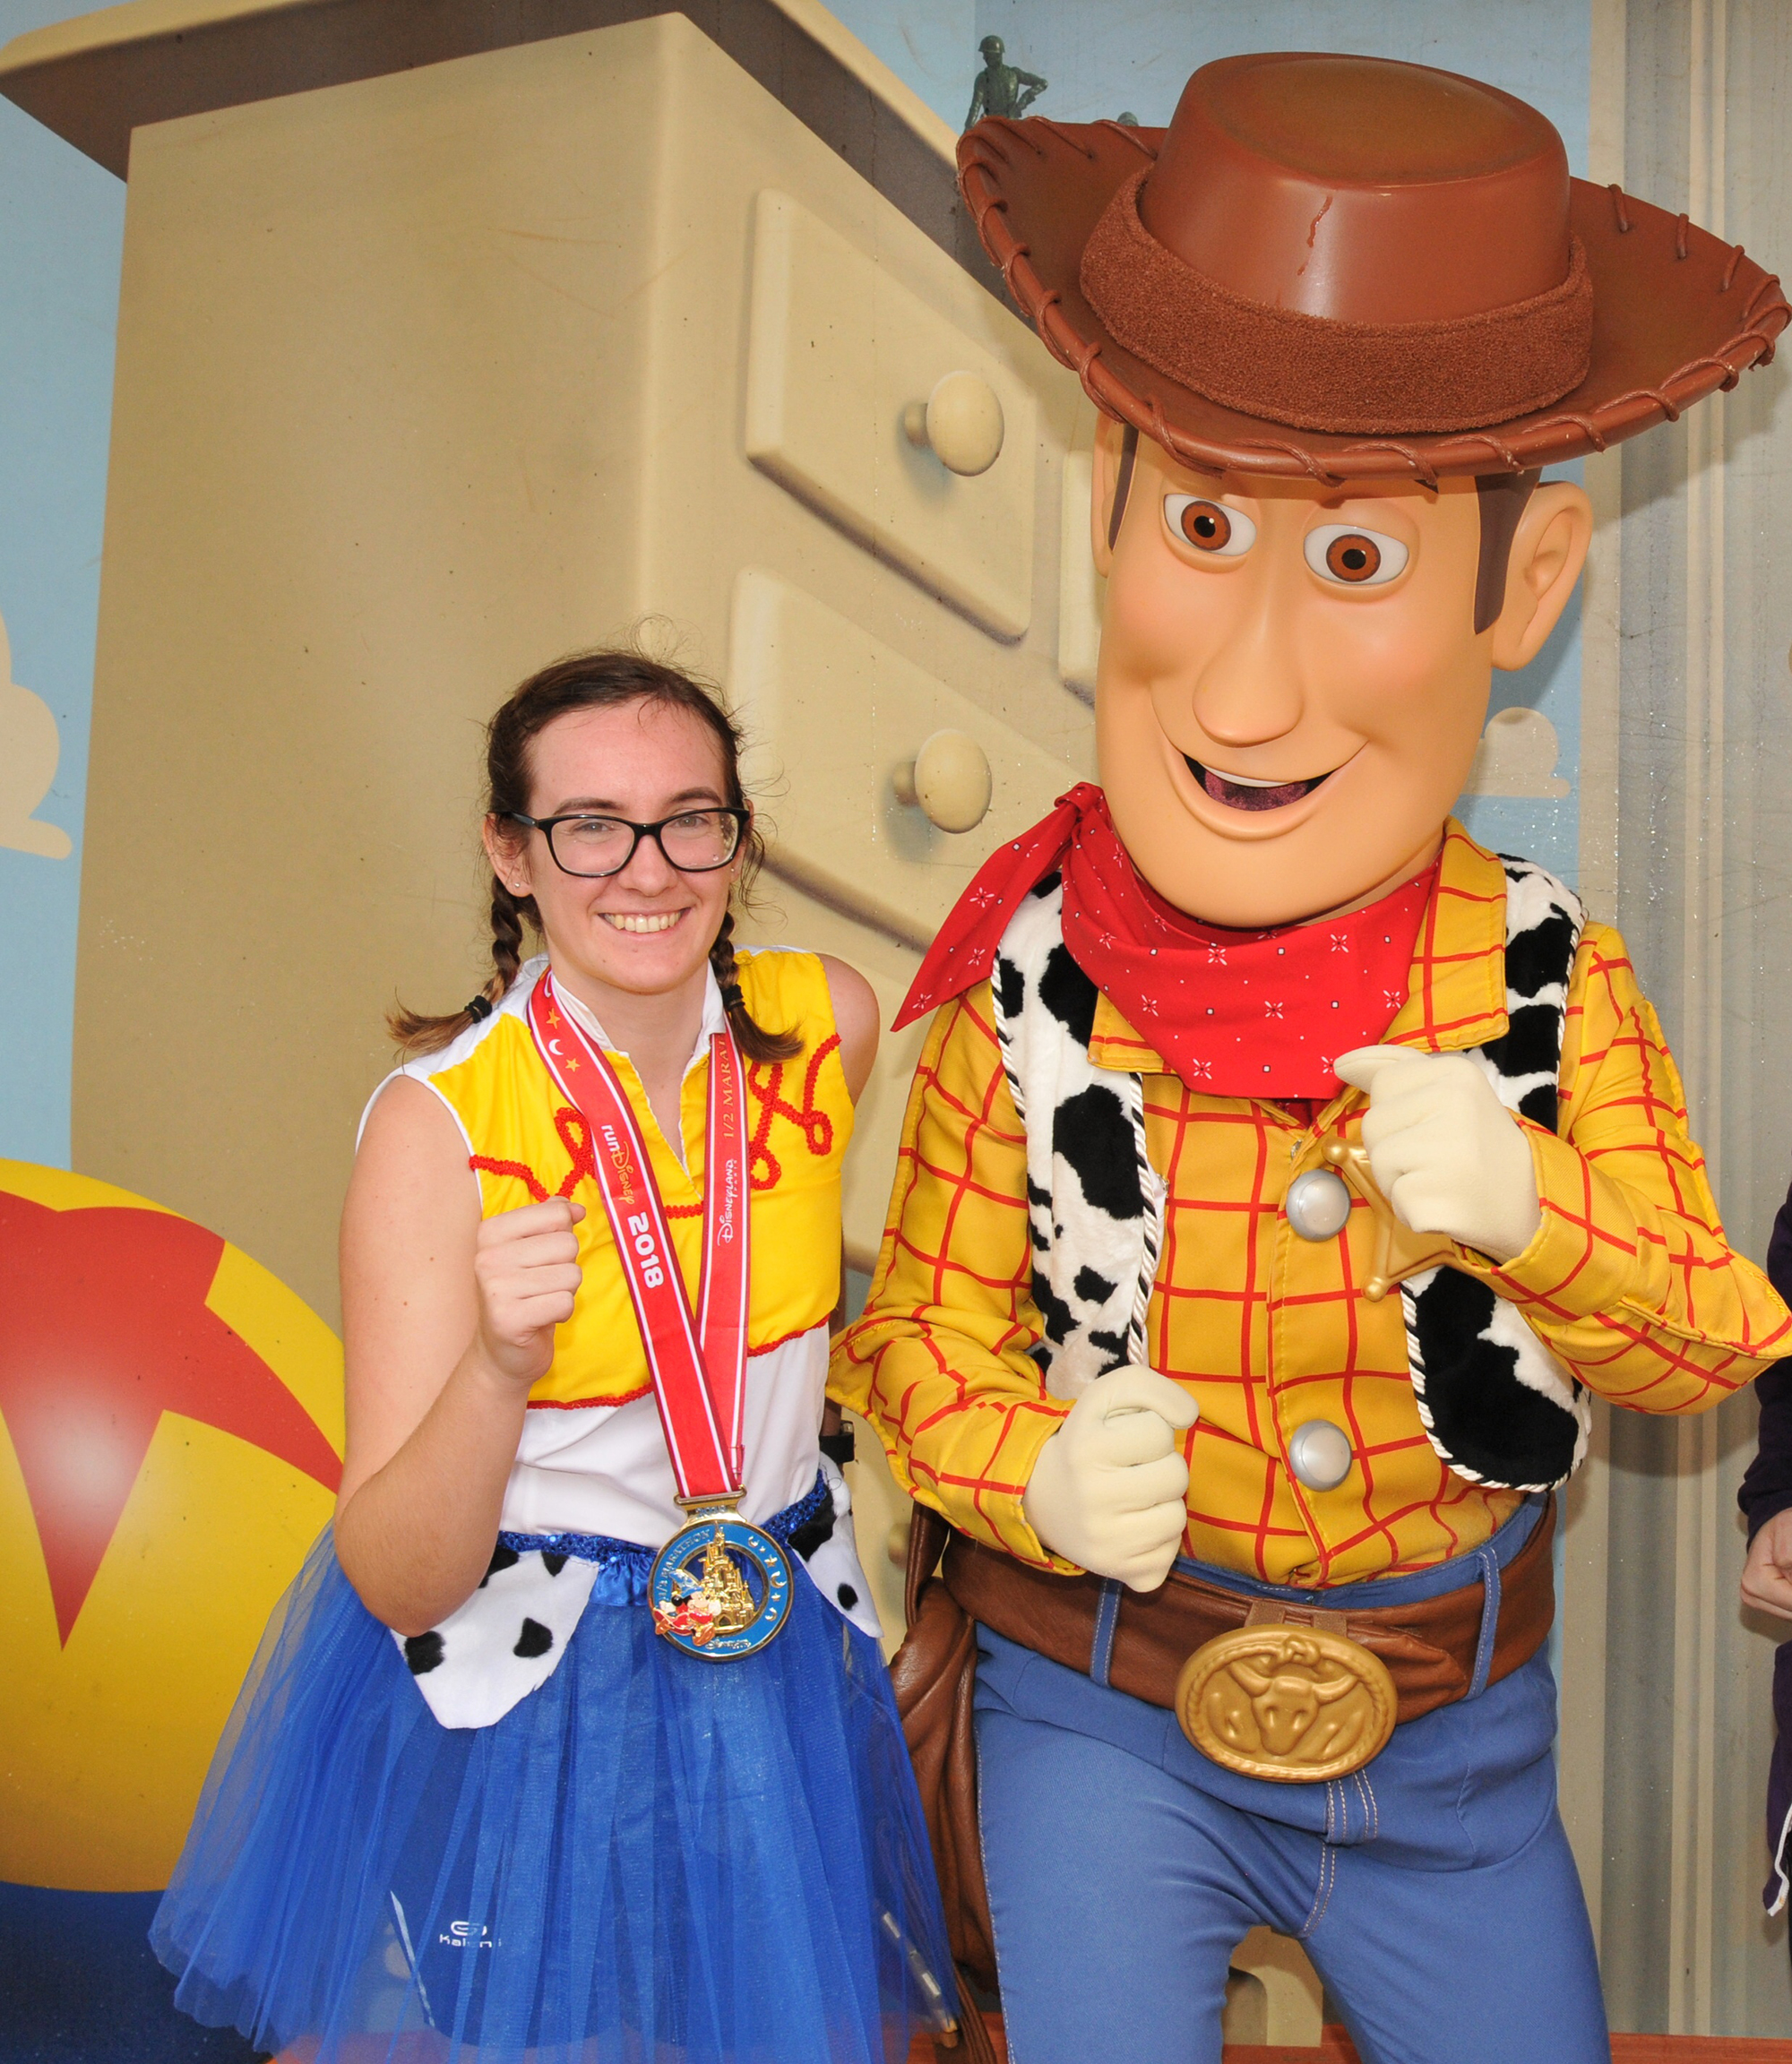 Girl in Jessie running costume posing with Woody character from Toy Story.